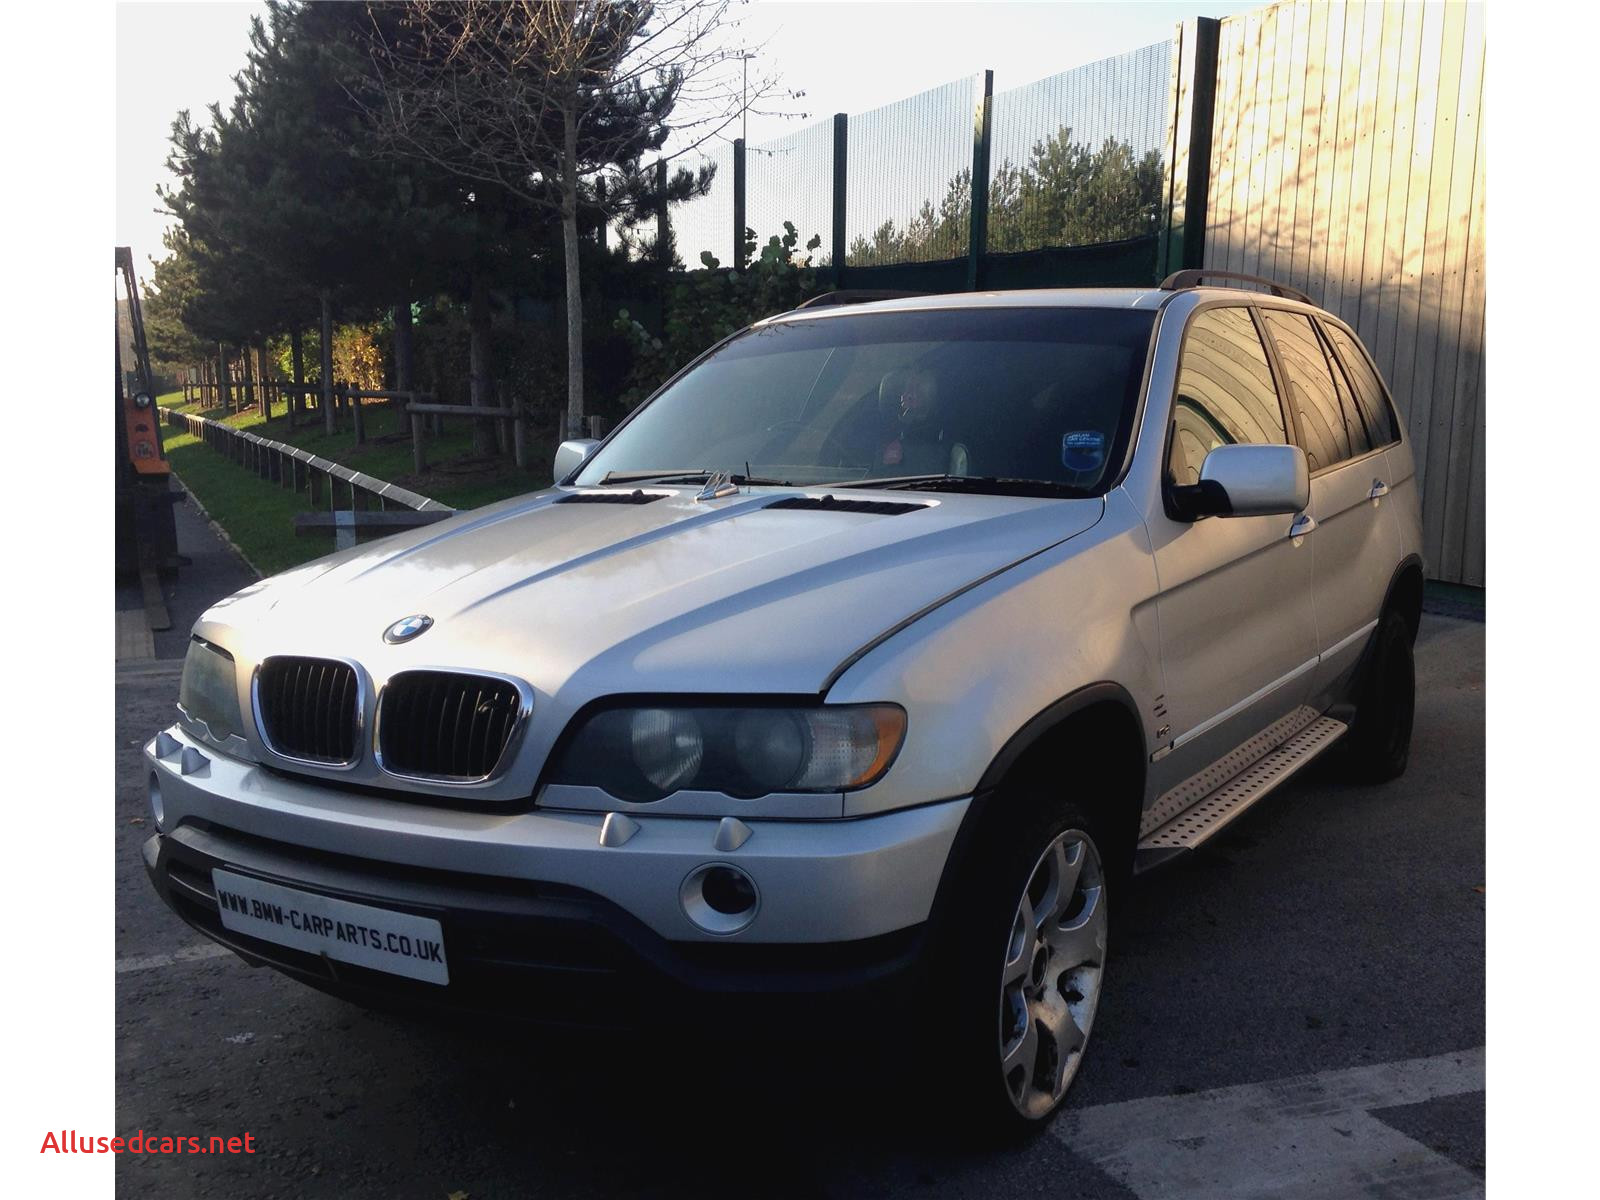 Beautiful Bmw X5 2002 Sports